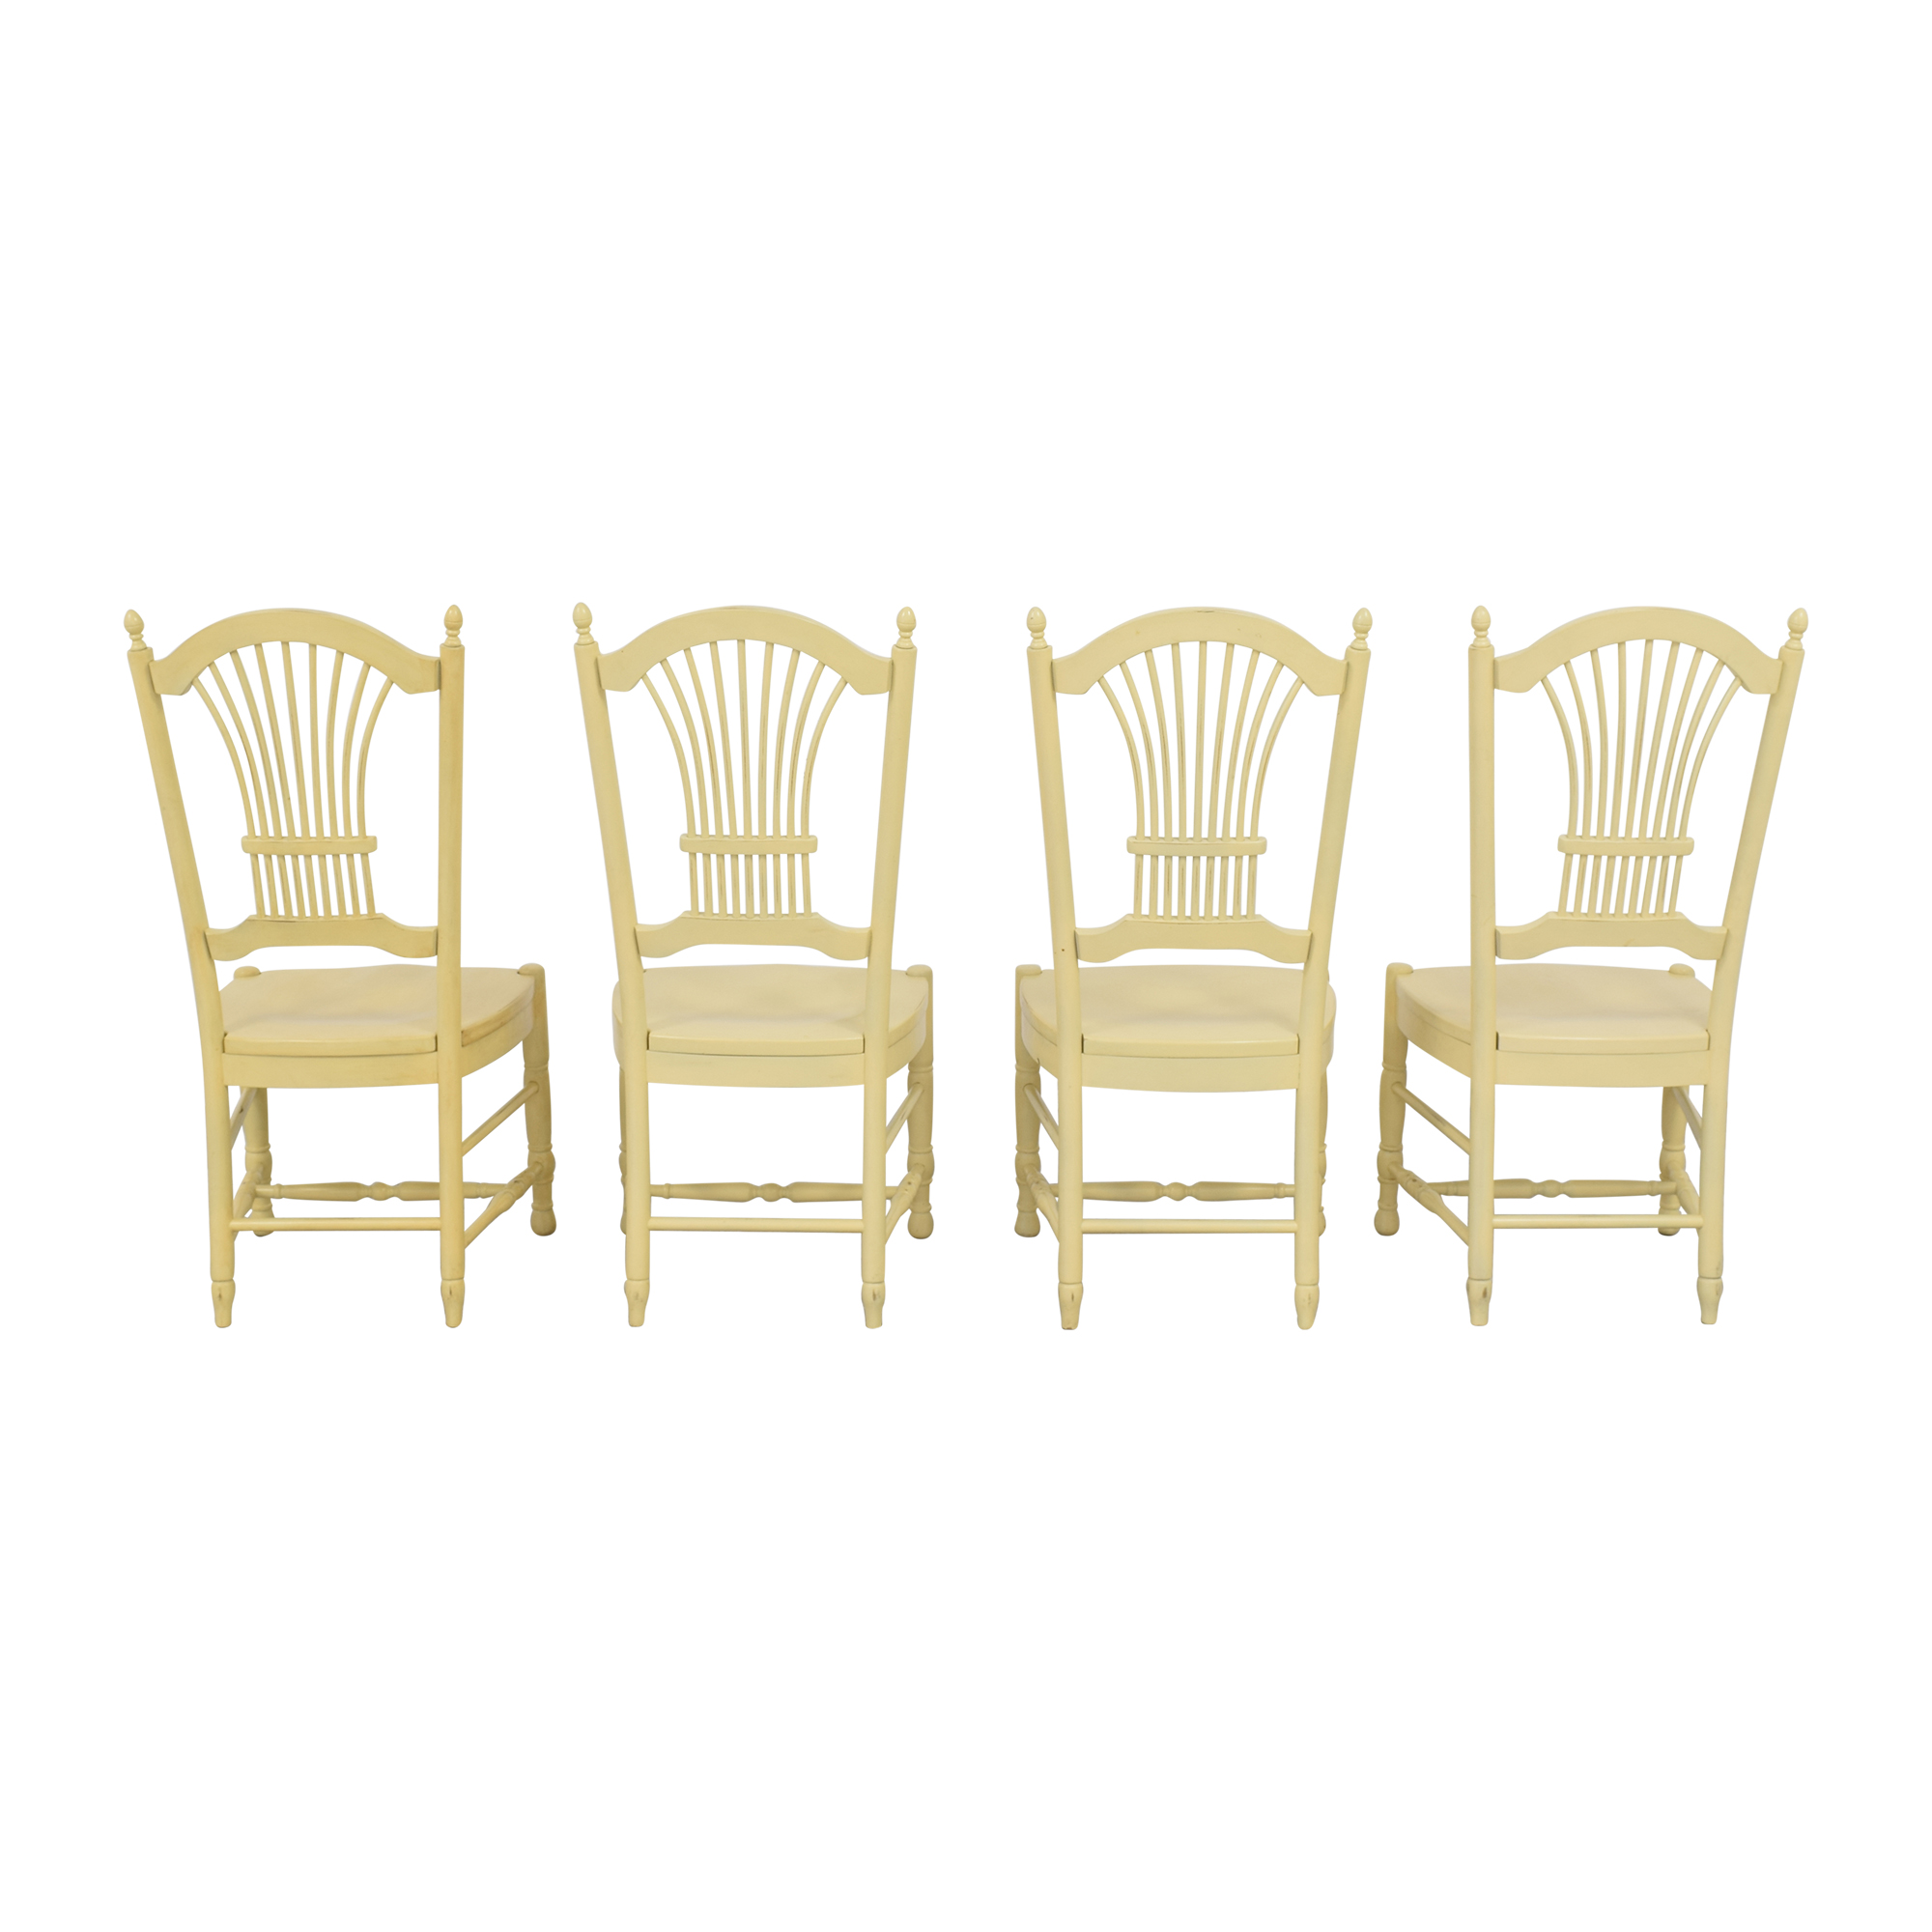 Ethan Allen Ethan Allen Wheat Back Dining Chairs Chairs